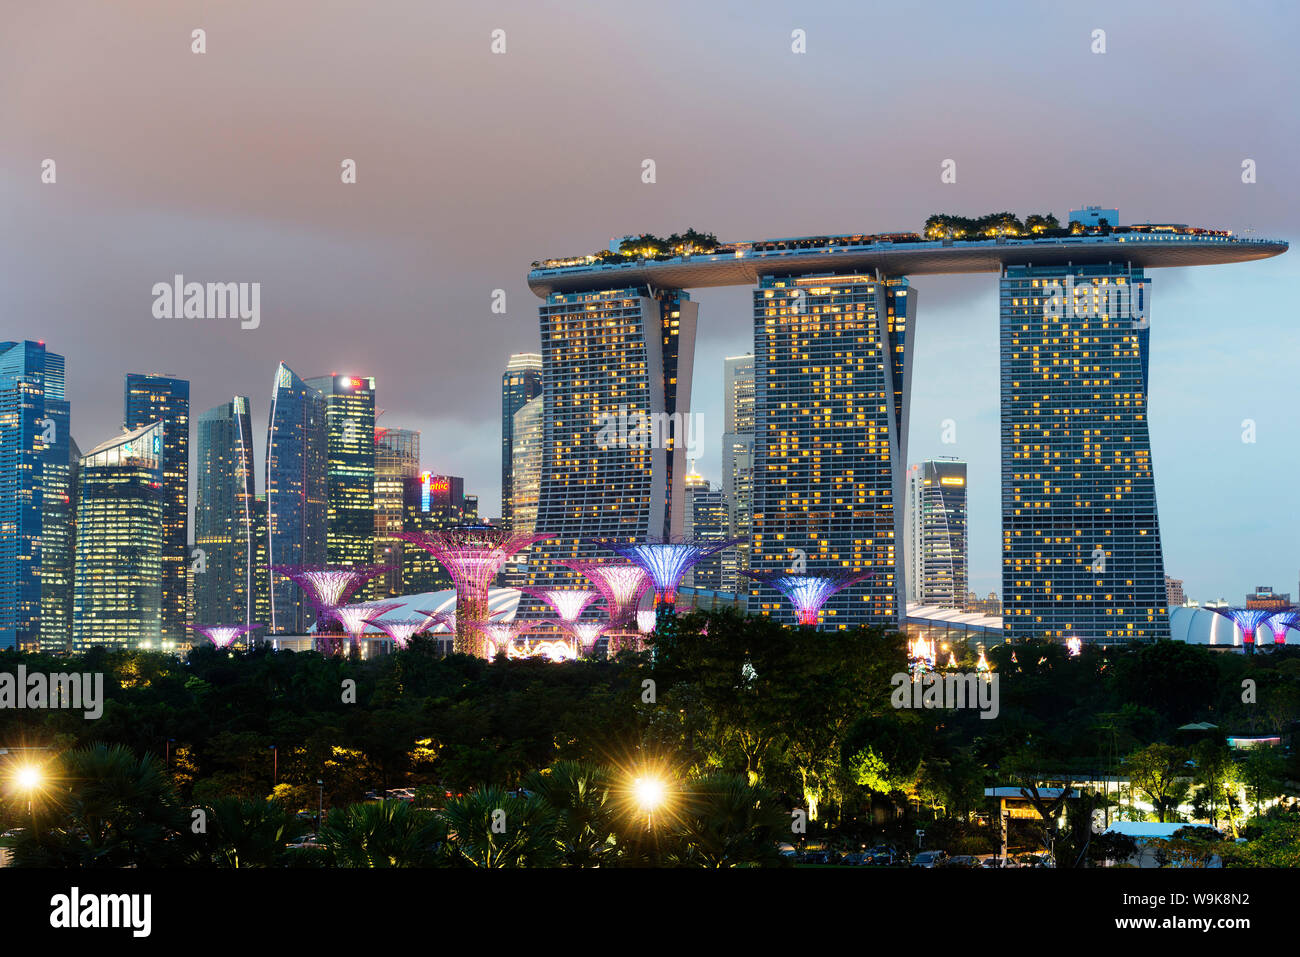 Gardens by the Bay, Supertree Grove and Marina Bay Sands Hotel and Casino, Singapore, Southeast Asia, Asia Stock Photo